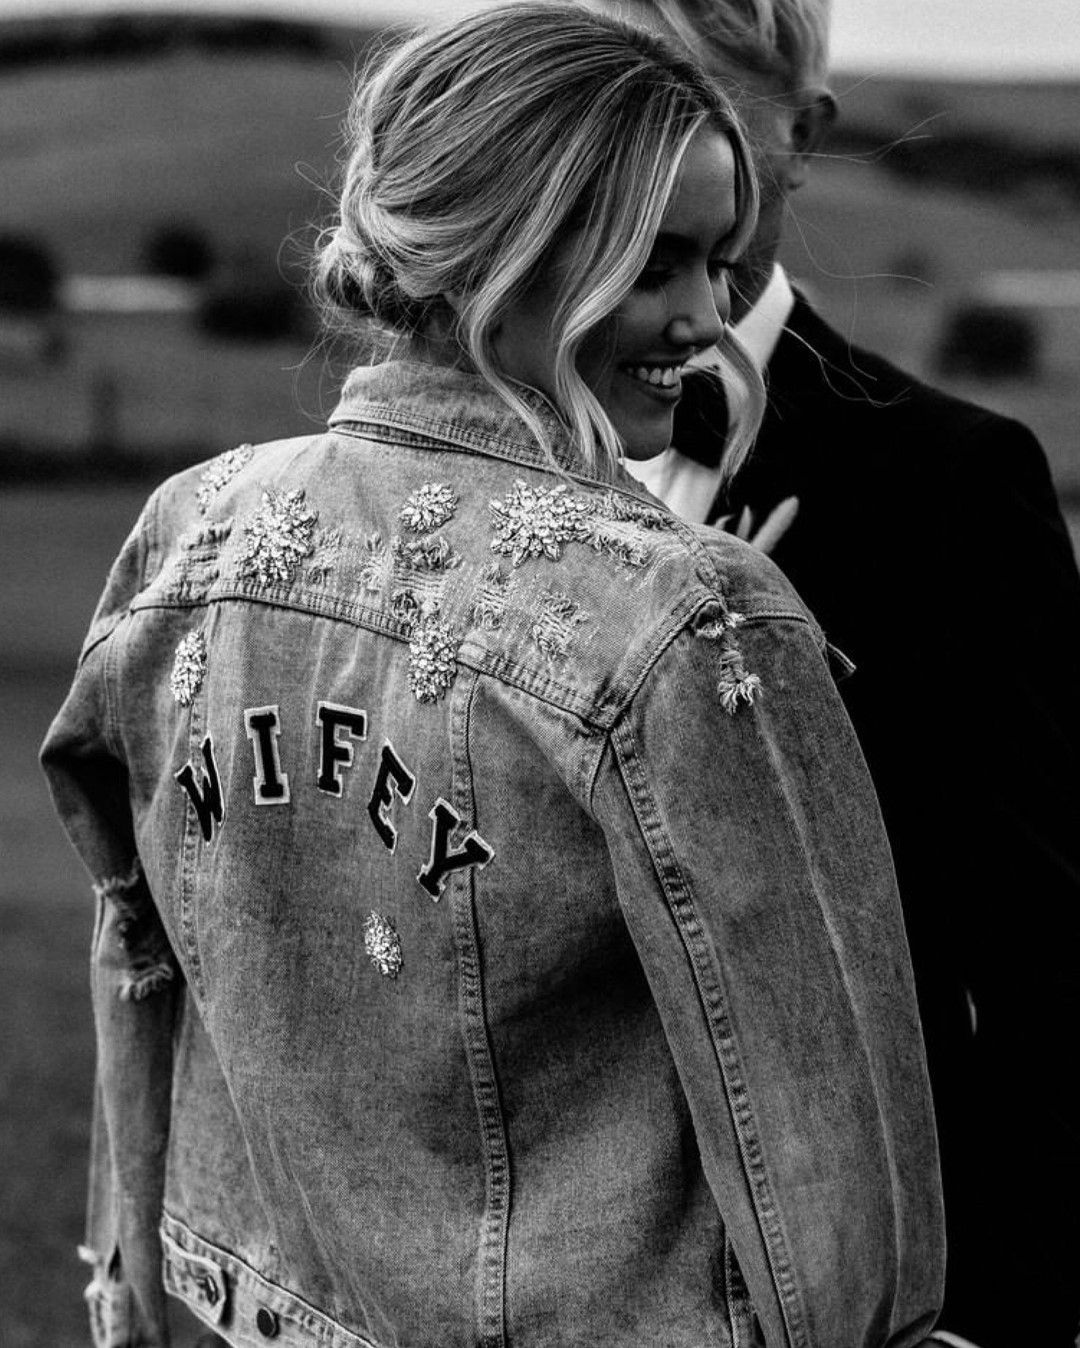 Kyha Studios One Day Bridal S Instagram Post Our Gift To You Receive A Complimentary Wifey Deni In 2021 One Day Bridal Wifey Jacket Denim Jacket [ 1348 x 1080 Pixel ]